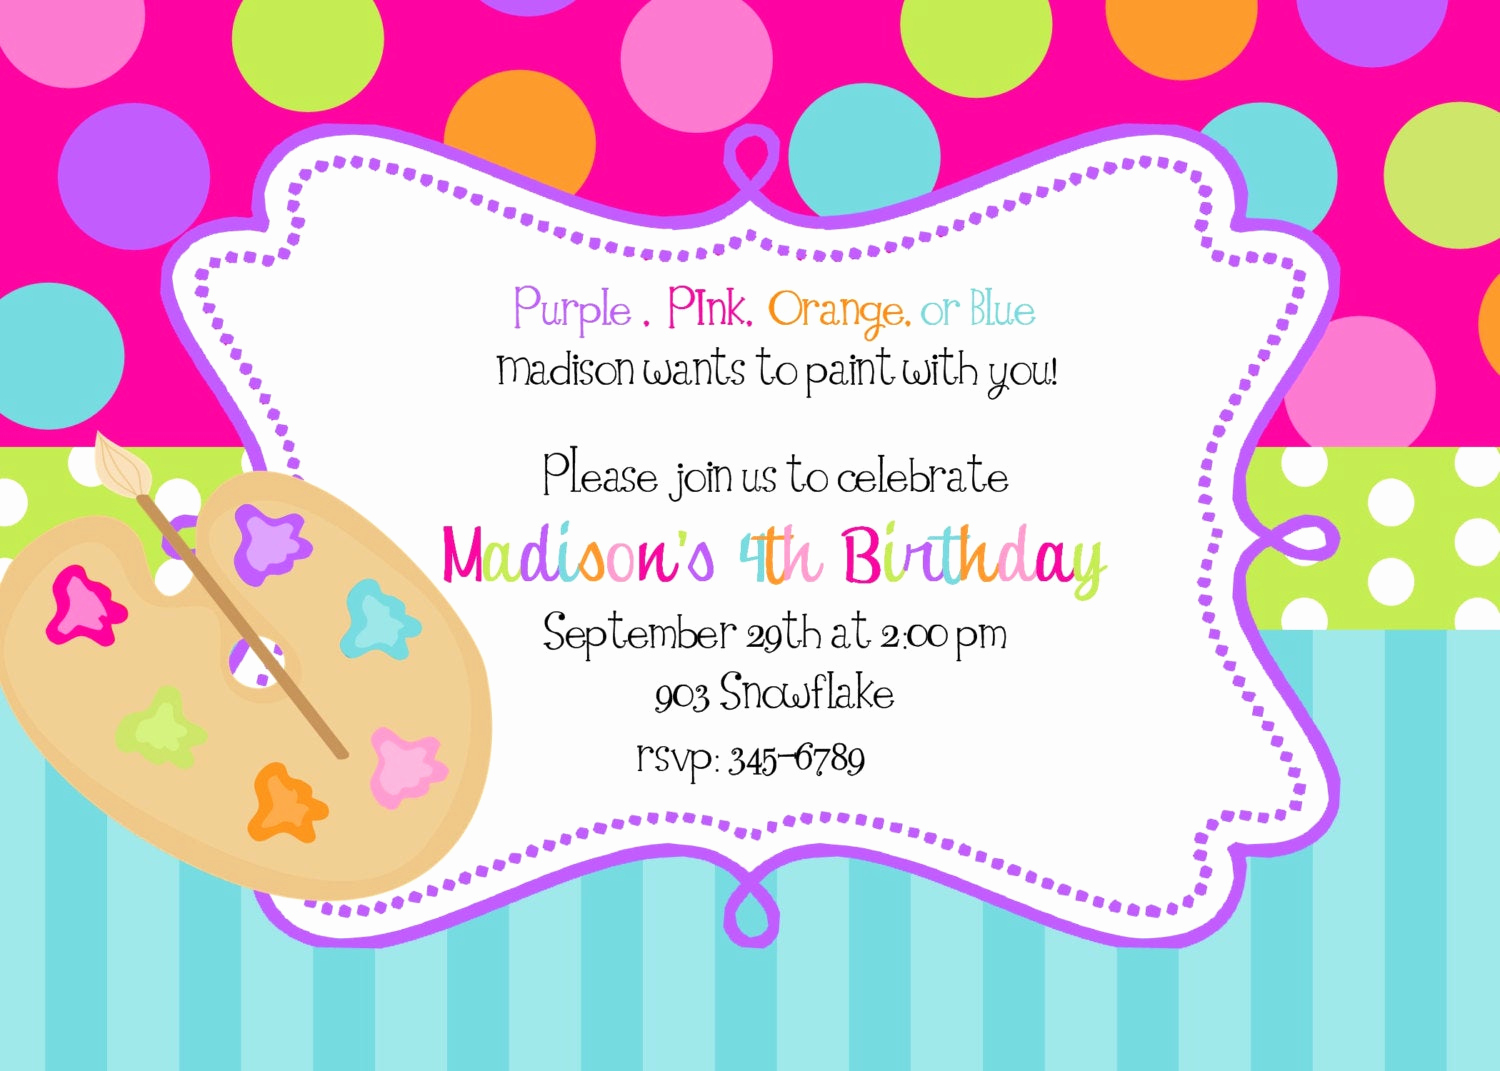 Paint Palette Invitation Template Elegant Art Painting Birthday Party Invitations Art Party Printable